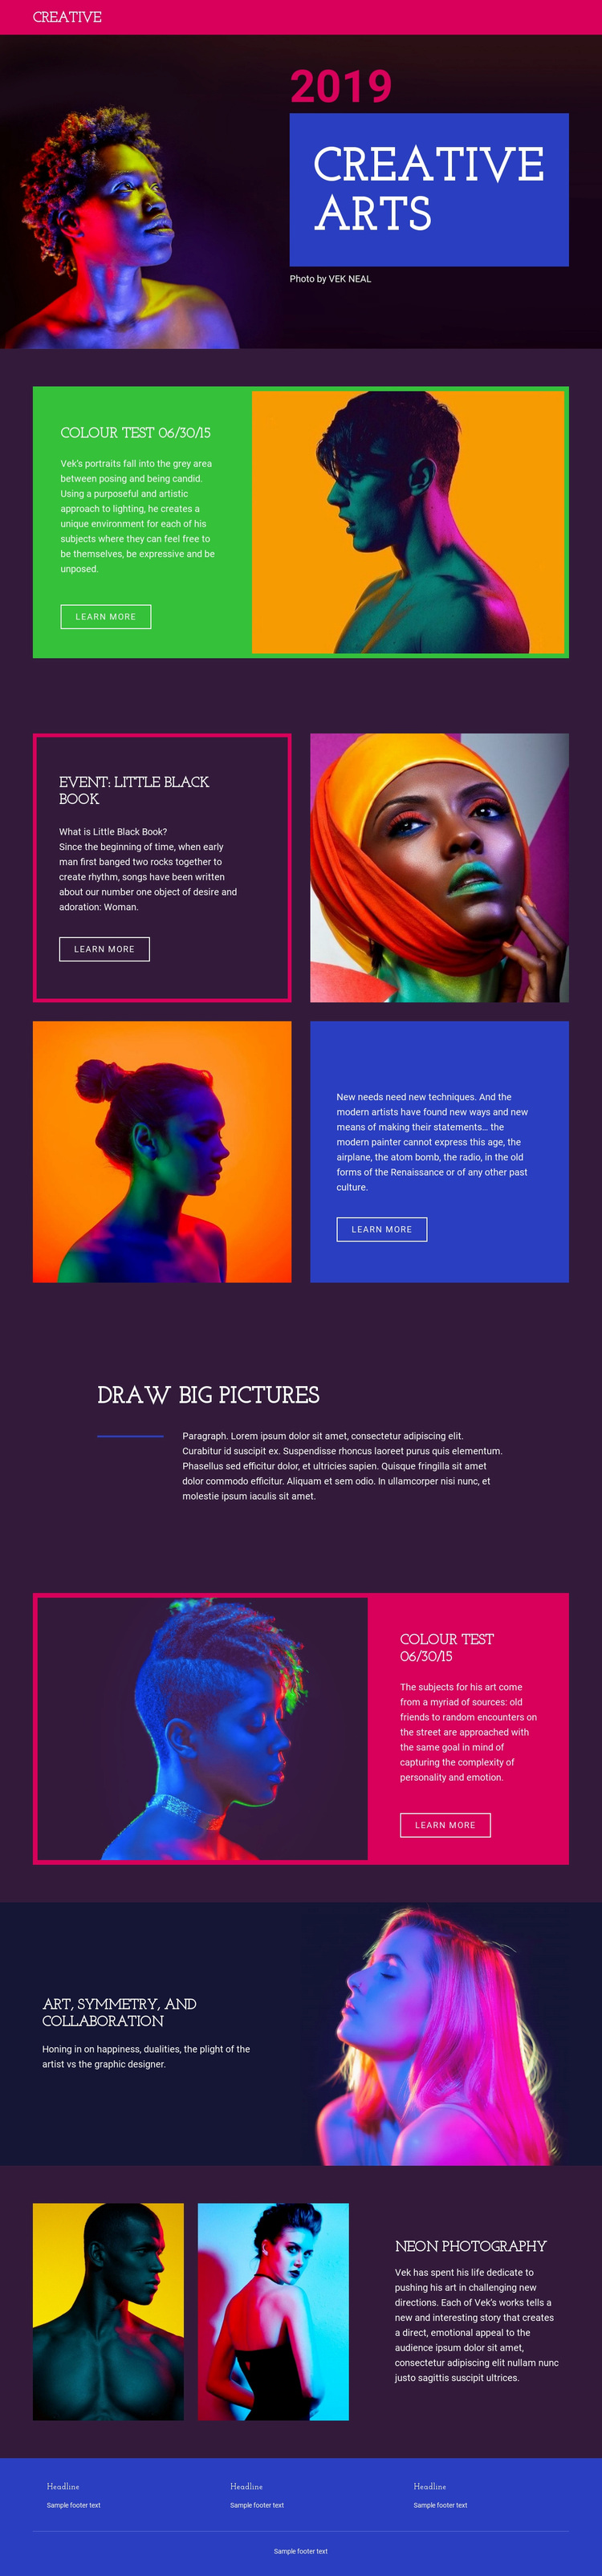 Limited-edition photography Web Page Designer